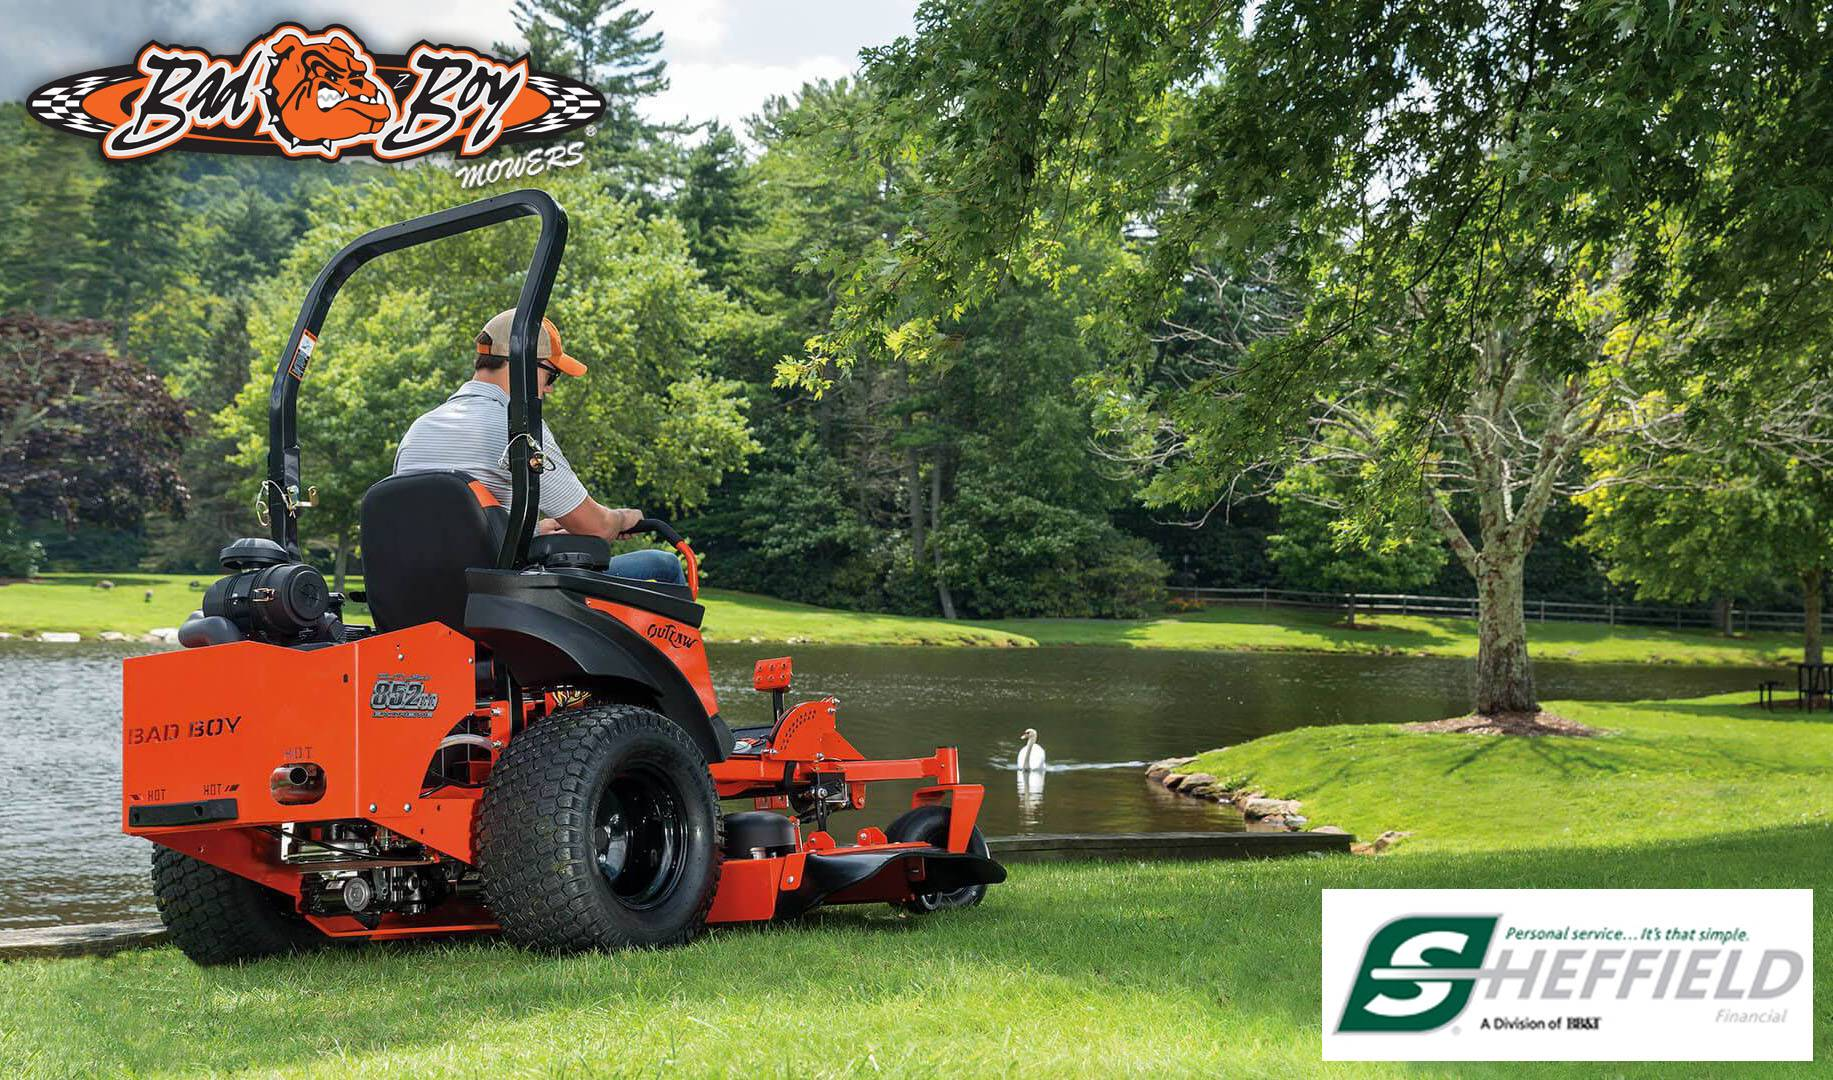 Bad Boy Mowers - Finance Offers